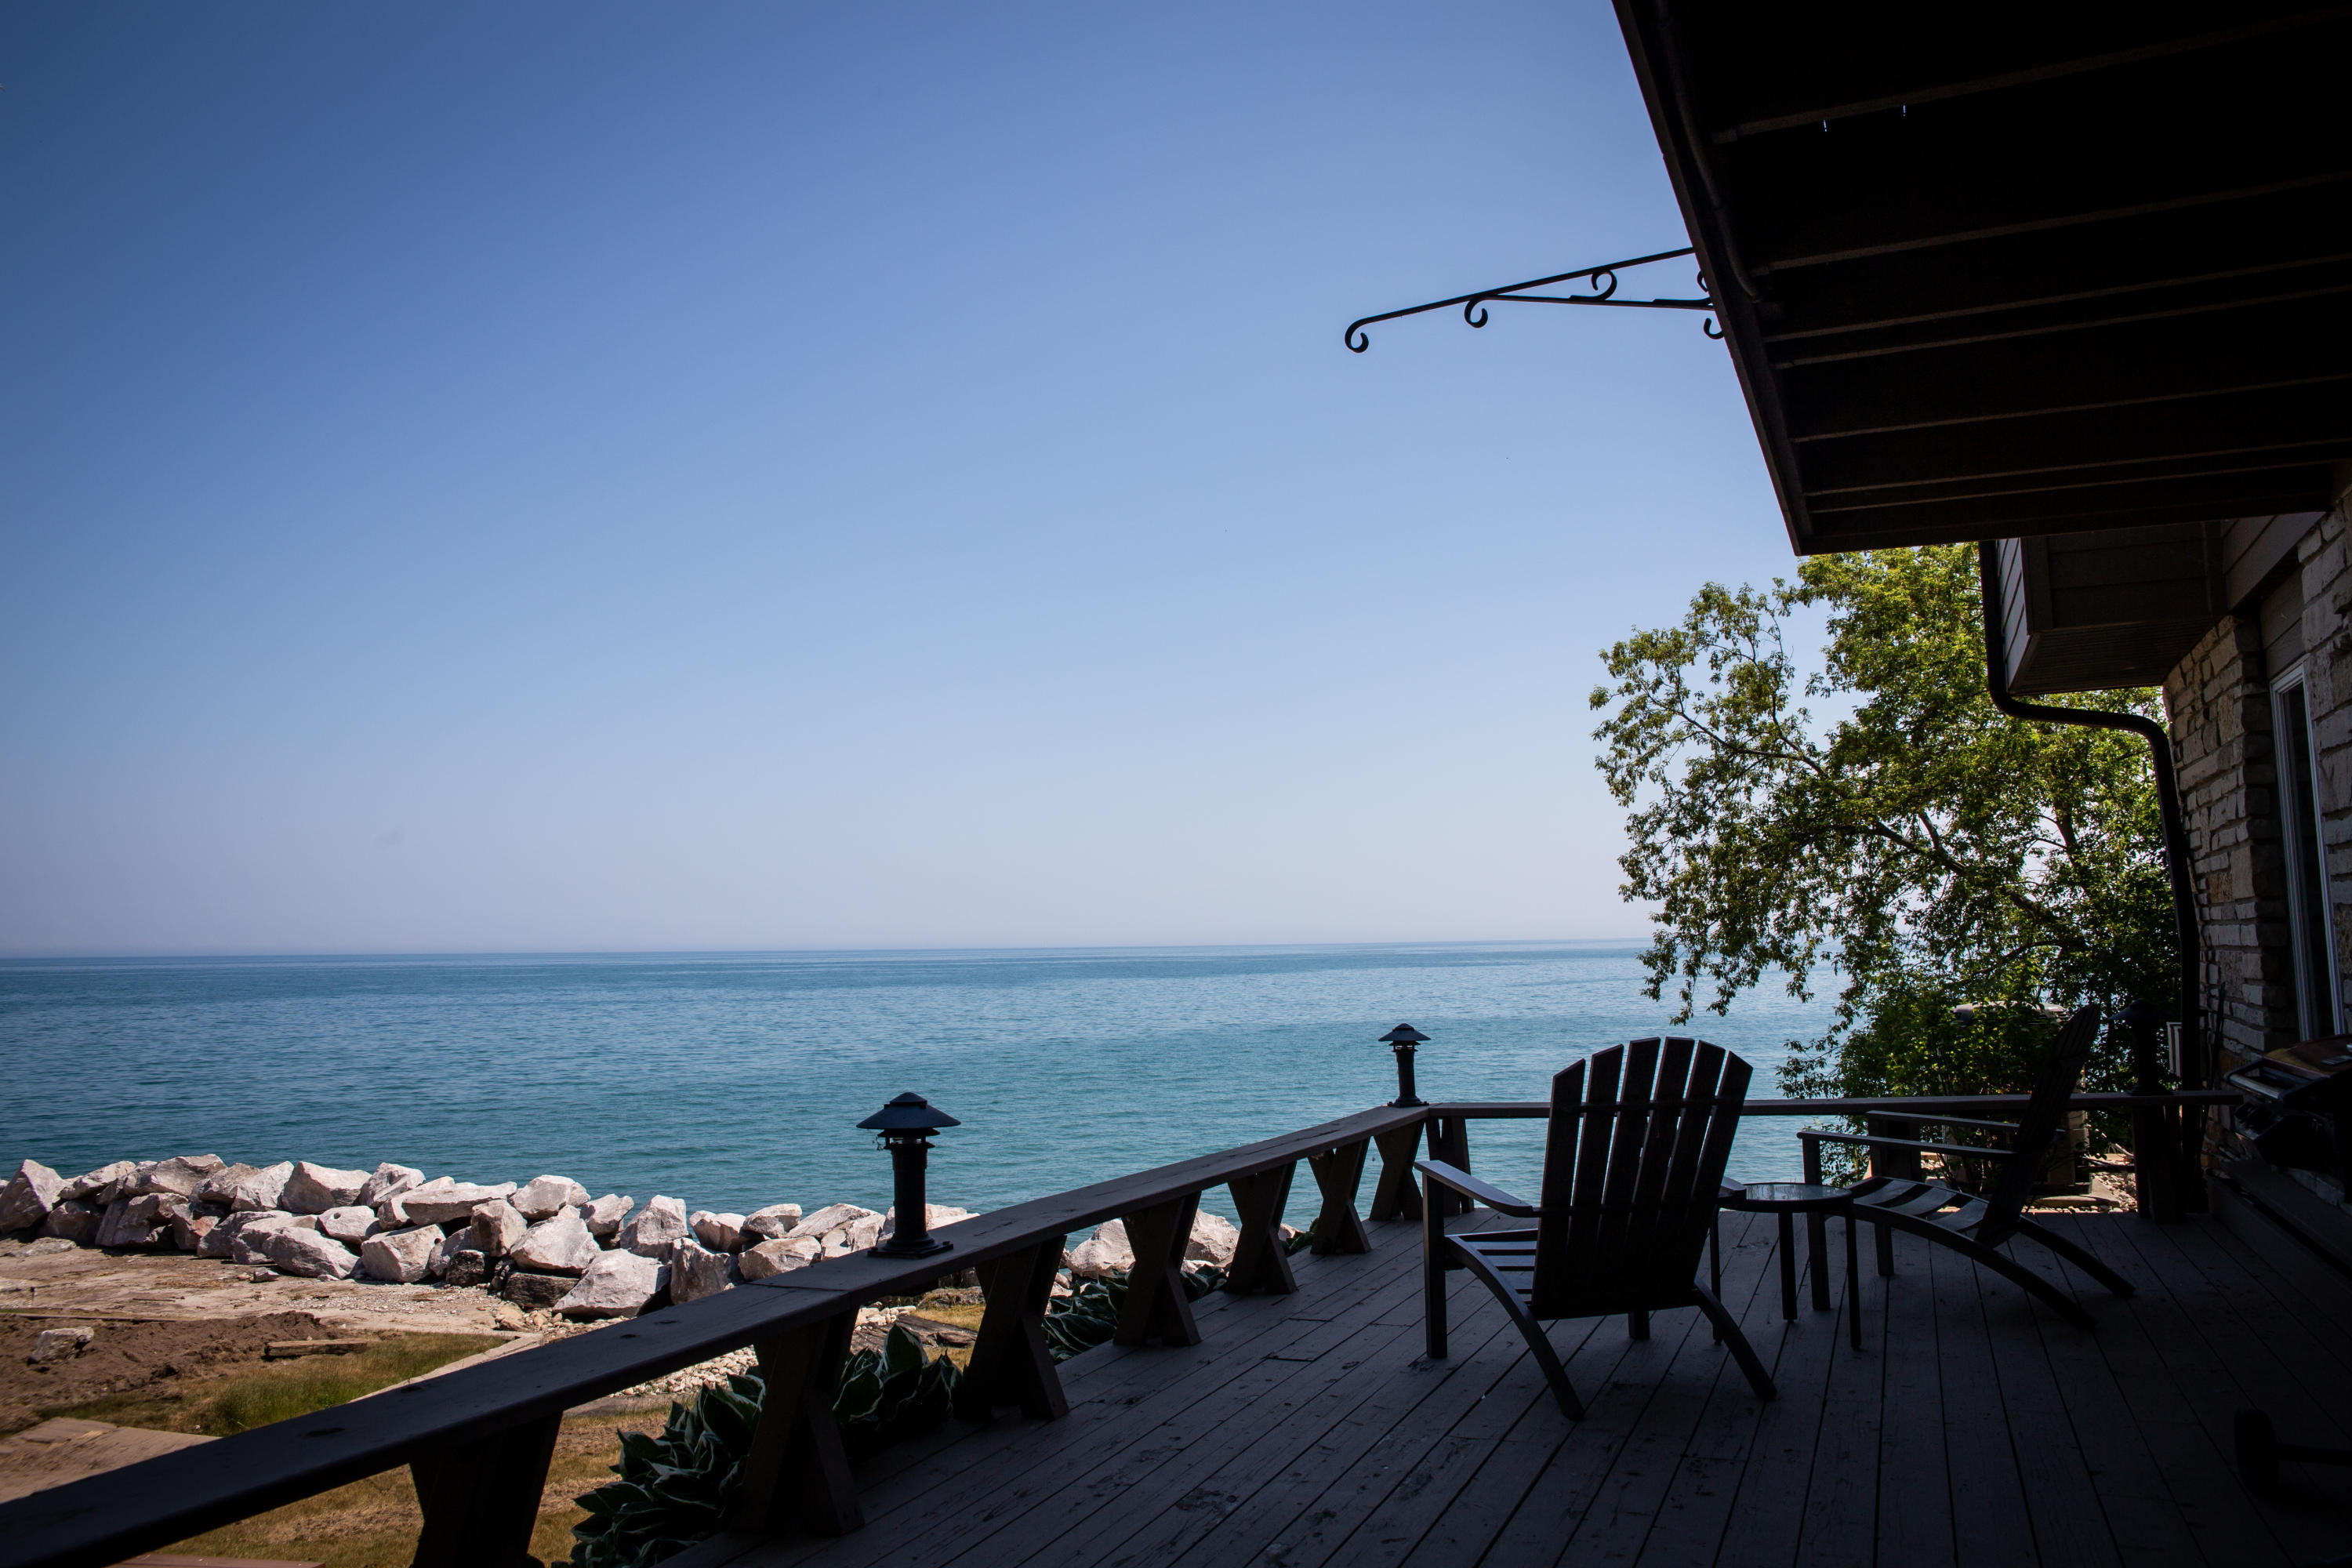 141 Lakeshore Dr., Somers, Wisconsin 53403, 2 Bedrooms Bedrooms, ,1 BathroomBathrooms,Condominiums,For Sale,Lakeshore Dr.,1,1746233